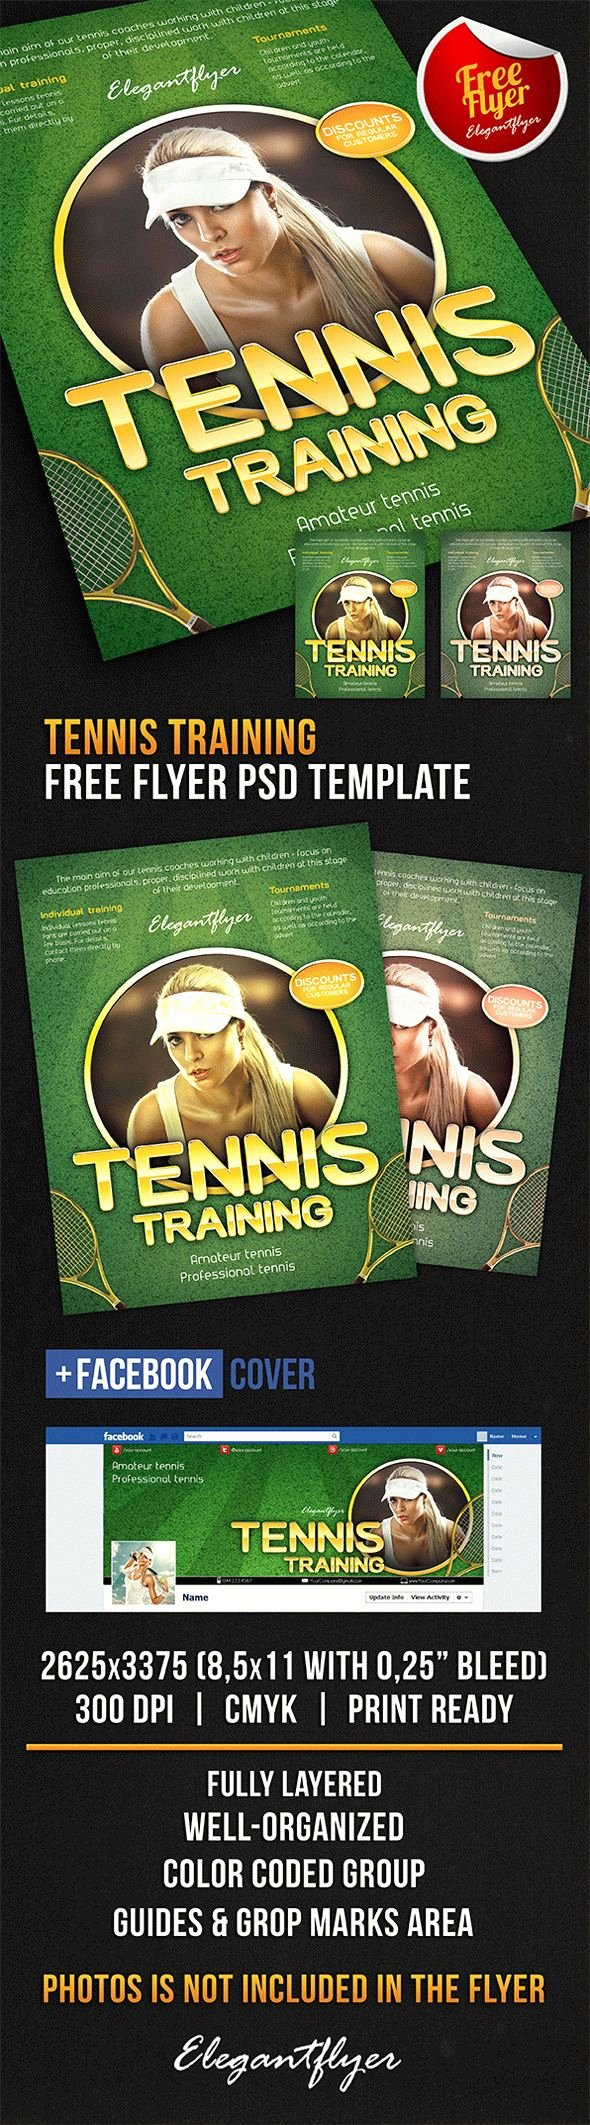 Tennis Flyer Template Free Fresh Tennis Training Free Flyer Psd Template Cover